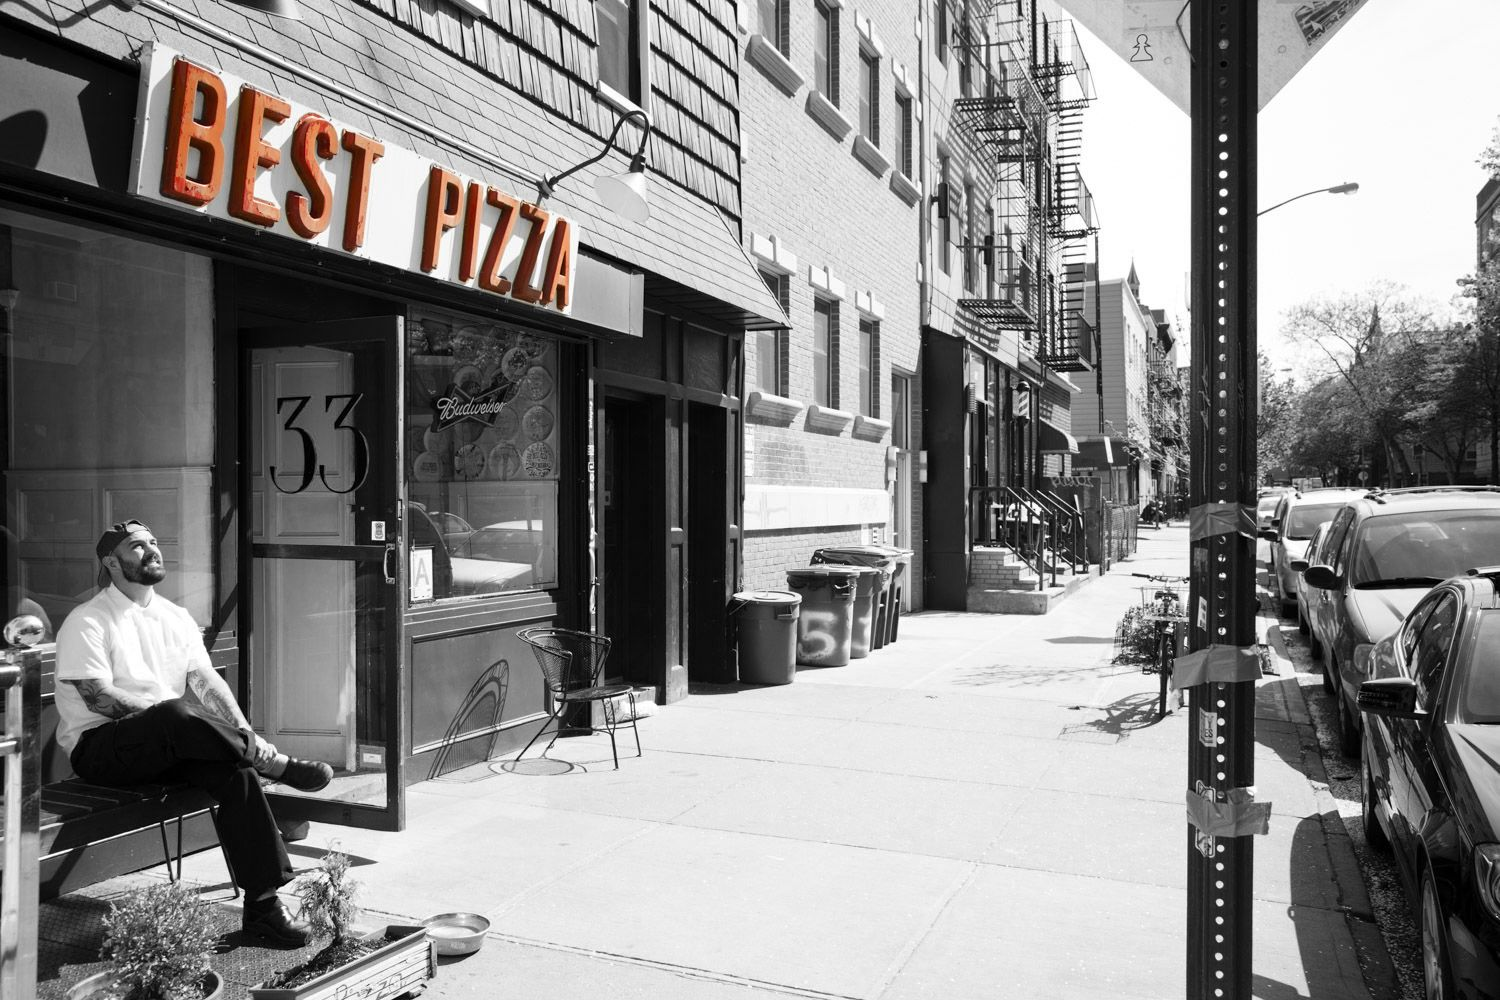 Best Pizza Frank Pinello 33 Havemeyer St Brooklyn Ny 11211 Phone 718 599 2210 In 2020 Good Pizza How To Make Pizza Brooklyn